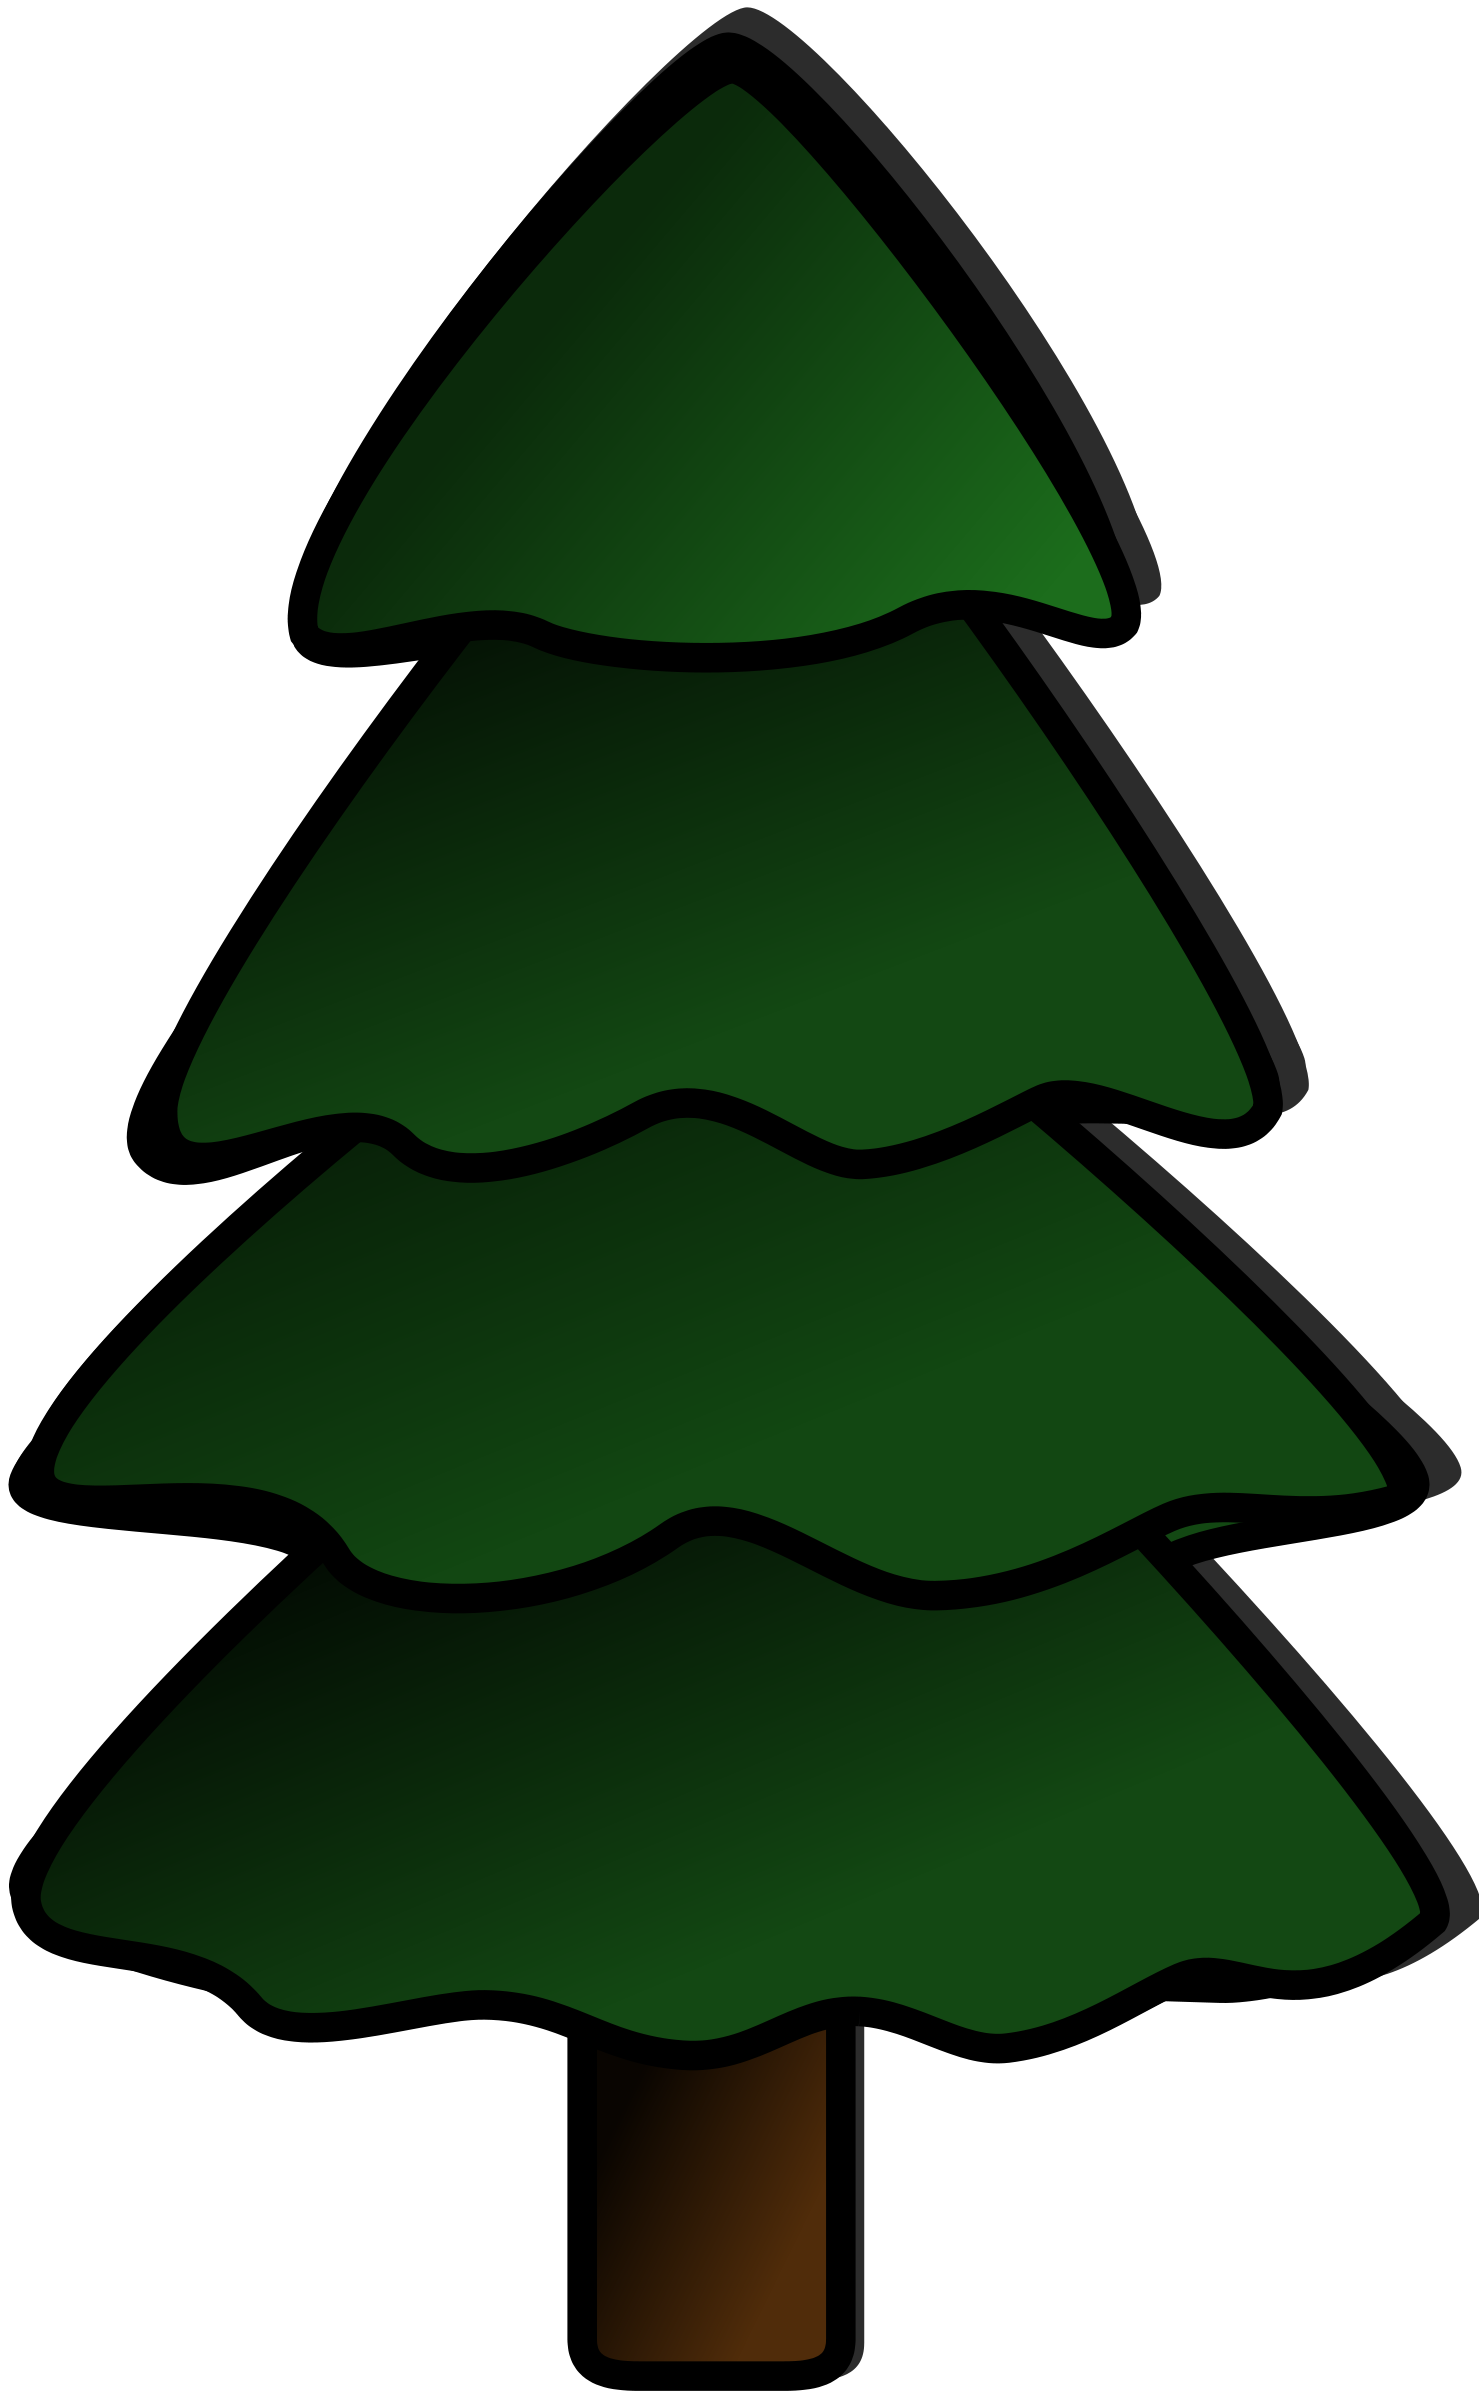 Pine tree forest clipart picture transparent 28+ Collection of Pine Tree Clipart Transparent | High quality, free ... picture transparent